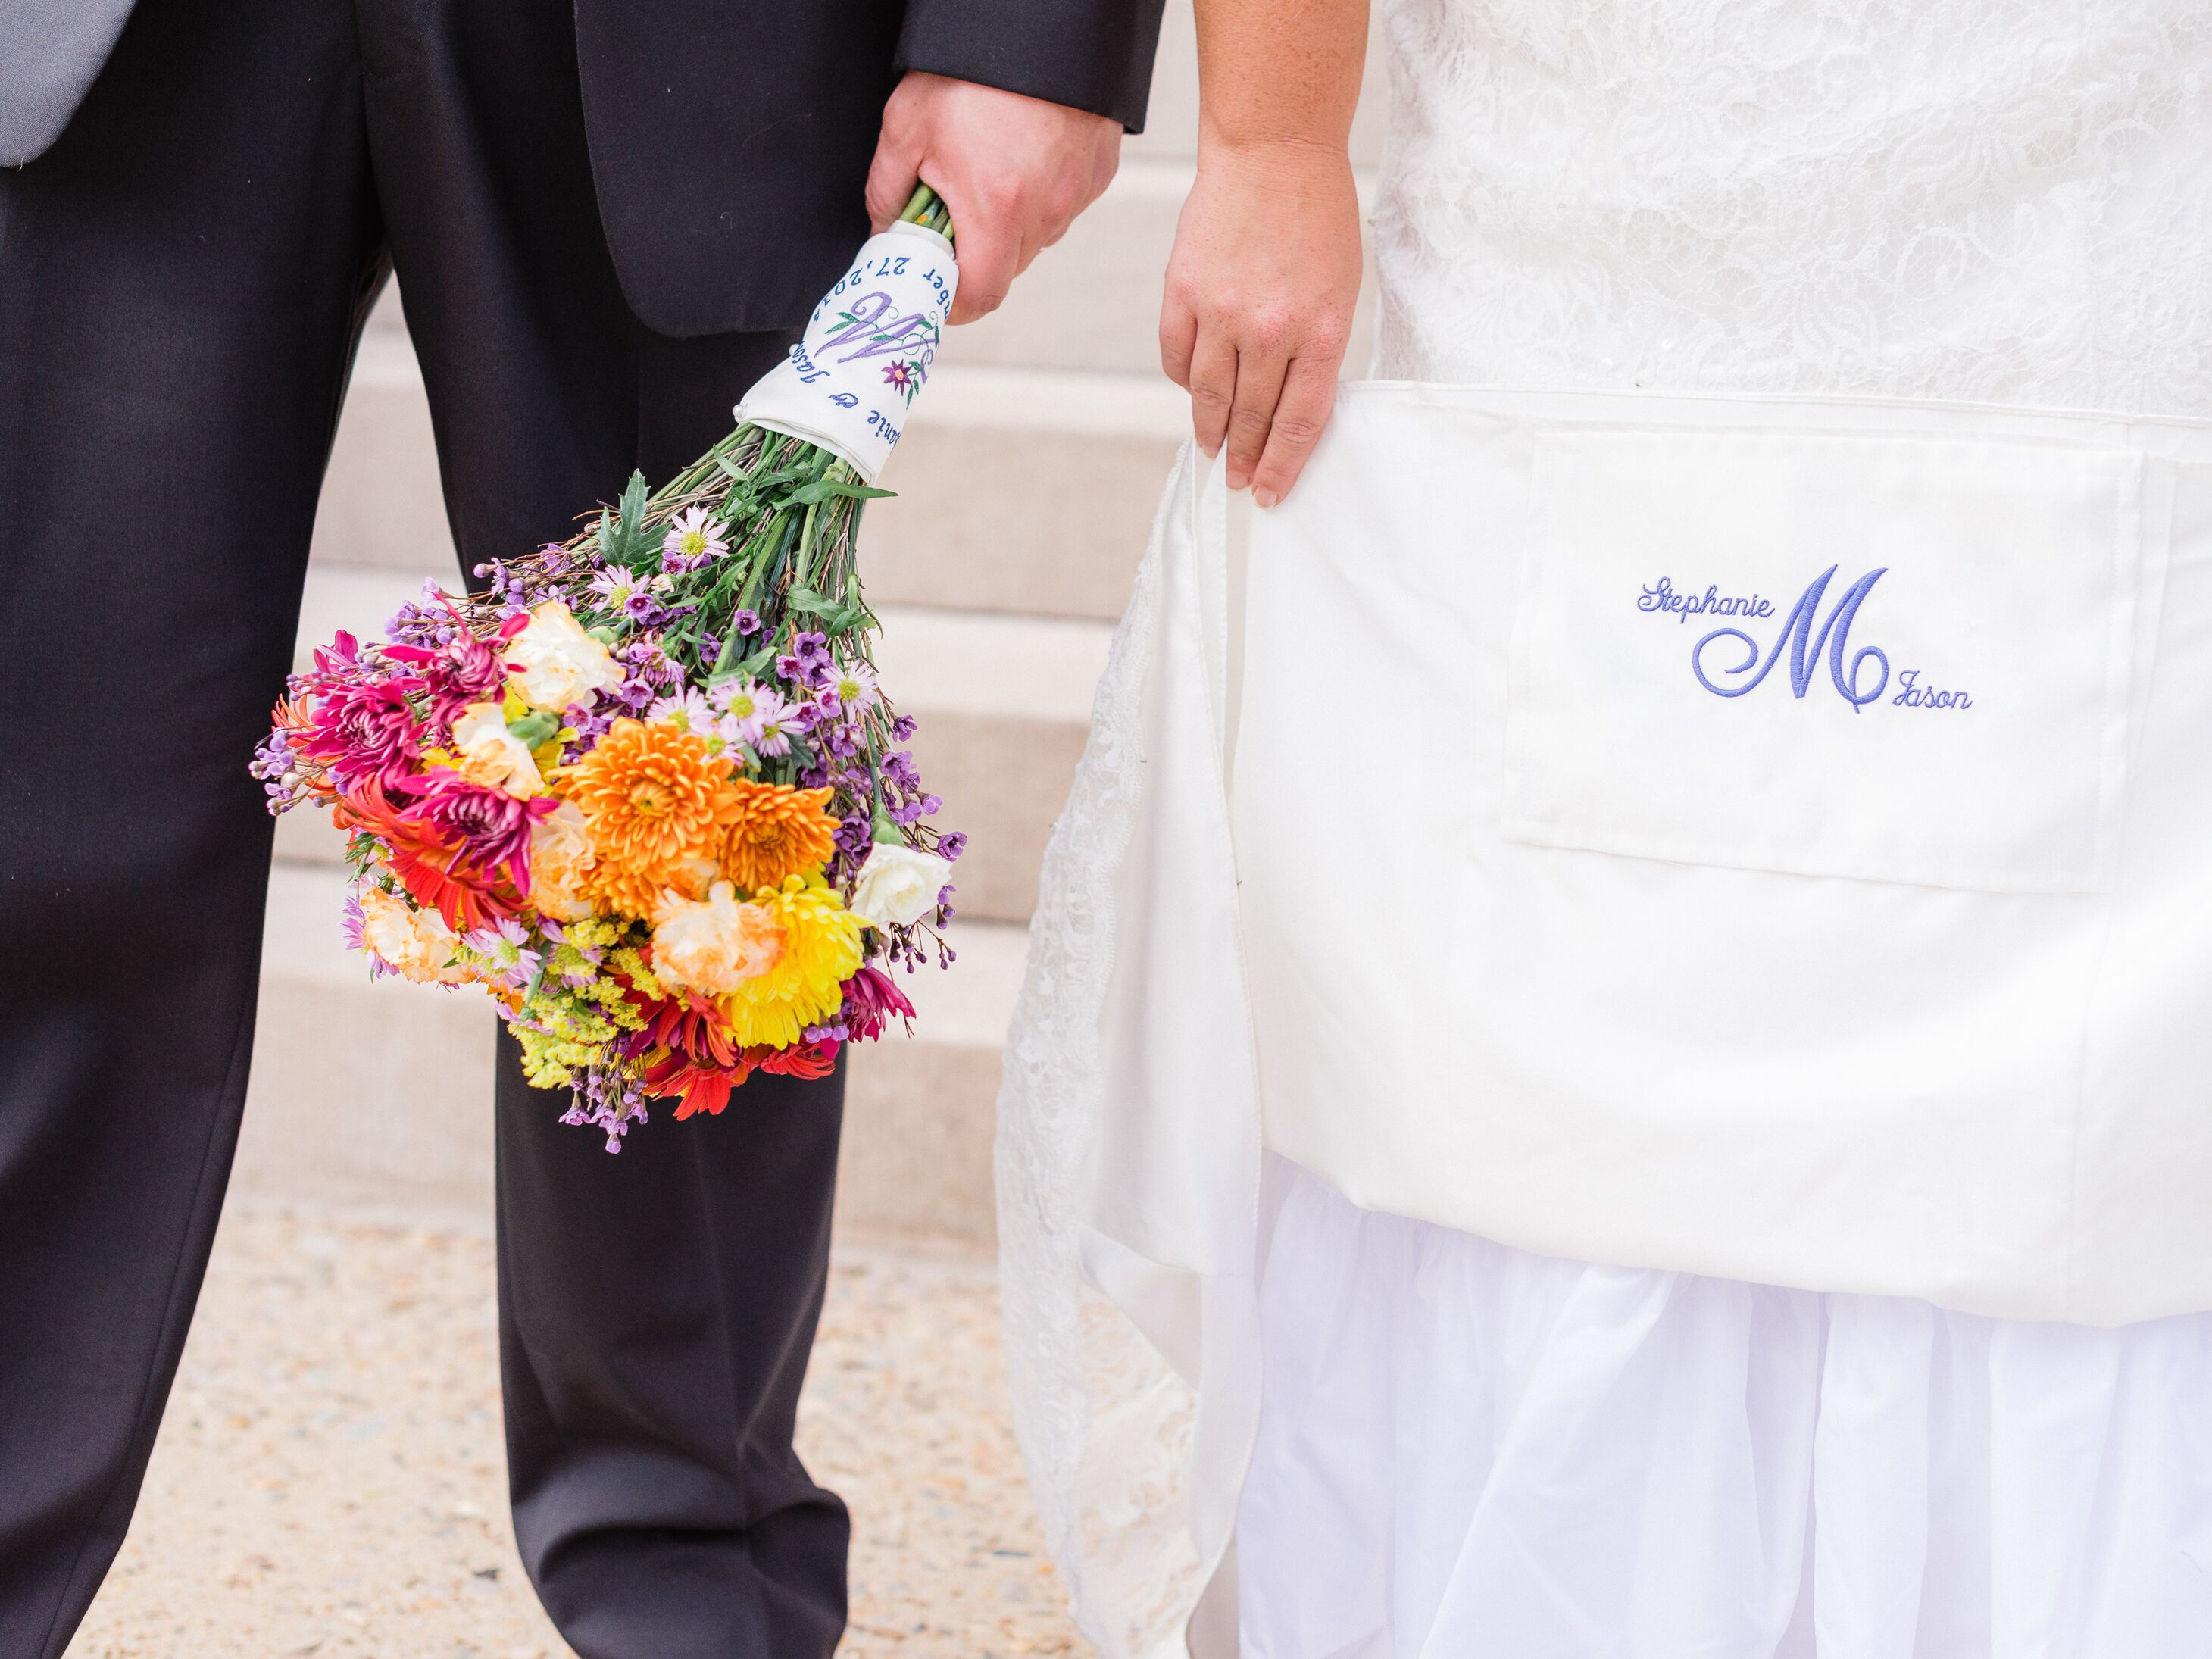 How Much Do Wedding Invites Cost: How Much Does It Cost To Change Your Name?